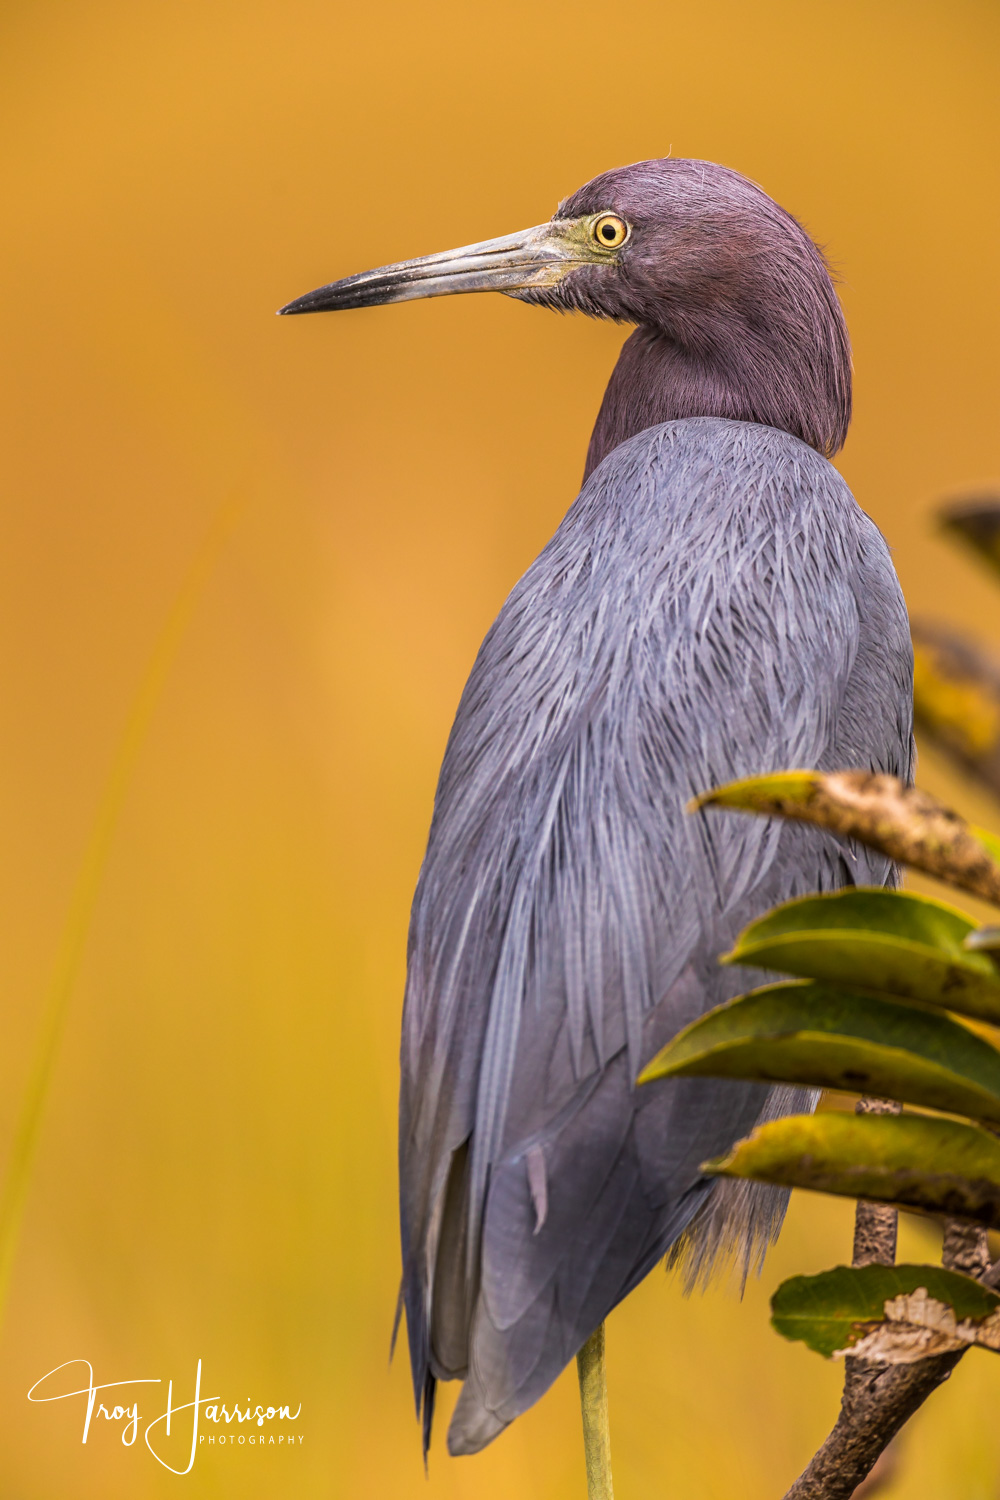 1 - Little Blue Heron, Everglades, Nov. 2018, img 1921.jpg